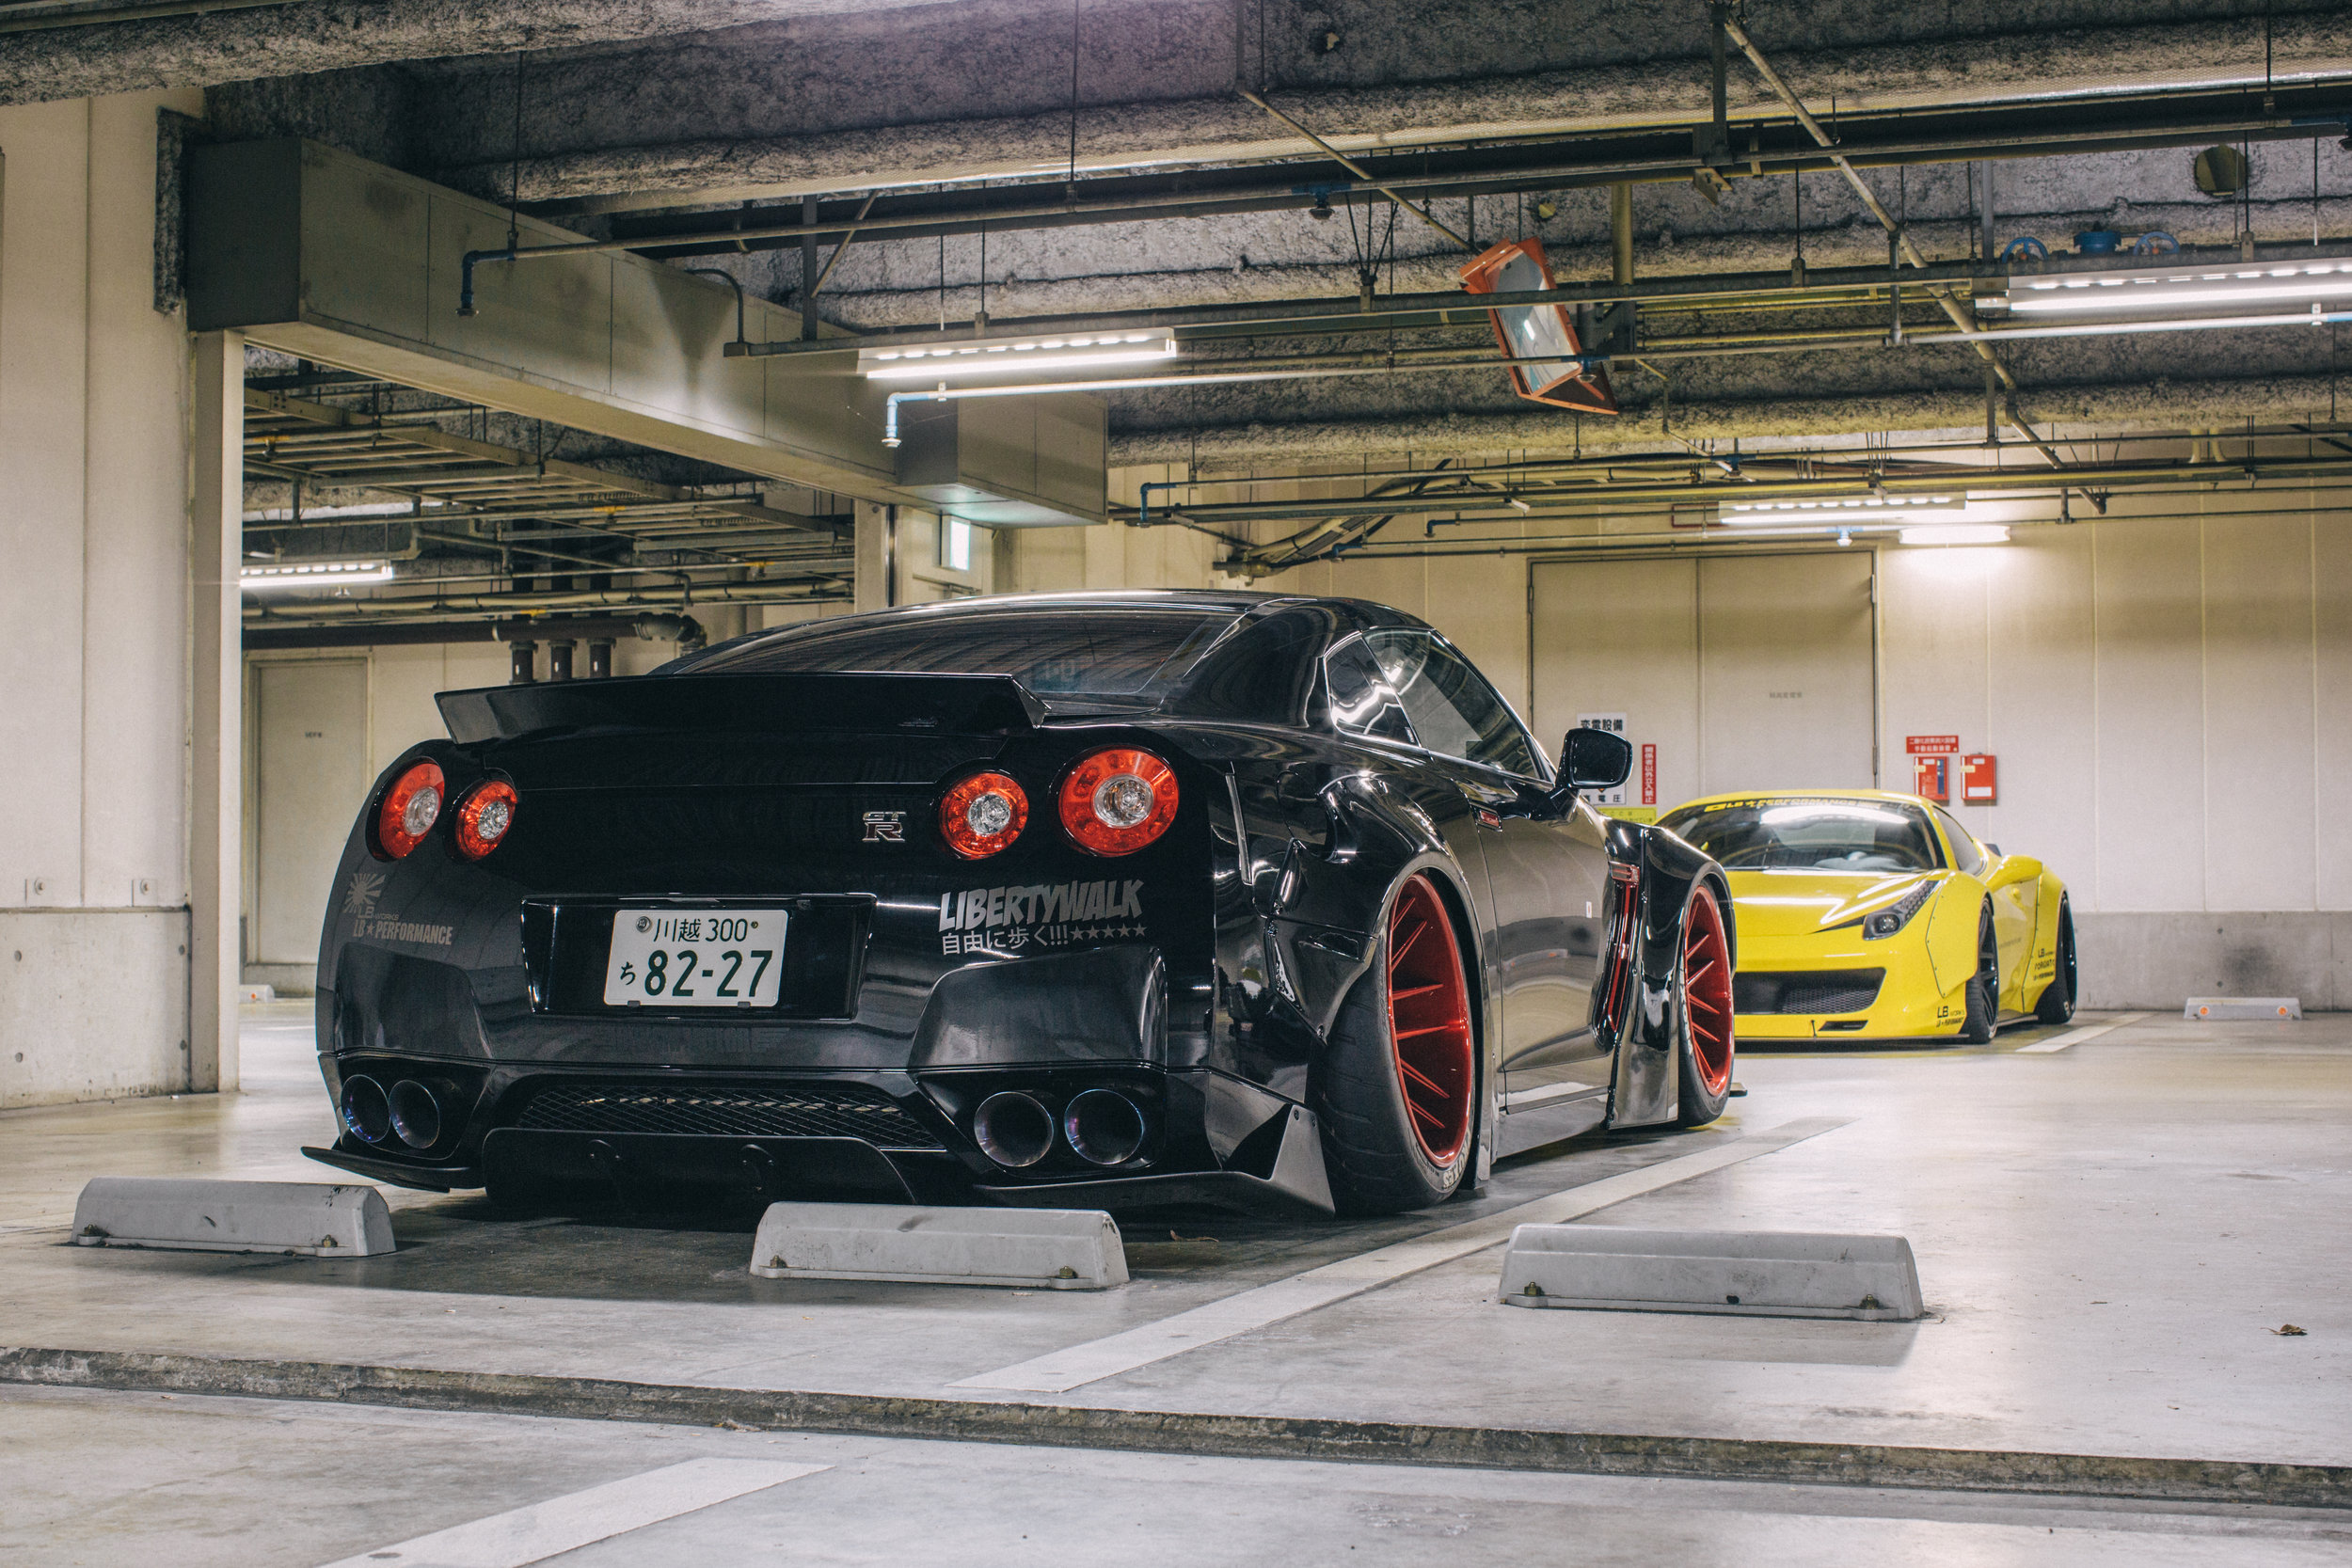 2.17.2015 - Liberty Walk Odaiba CPL Obuchi Motors Edited (17 of 26).jpg